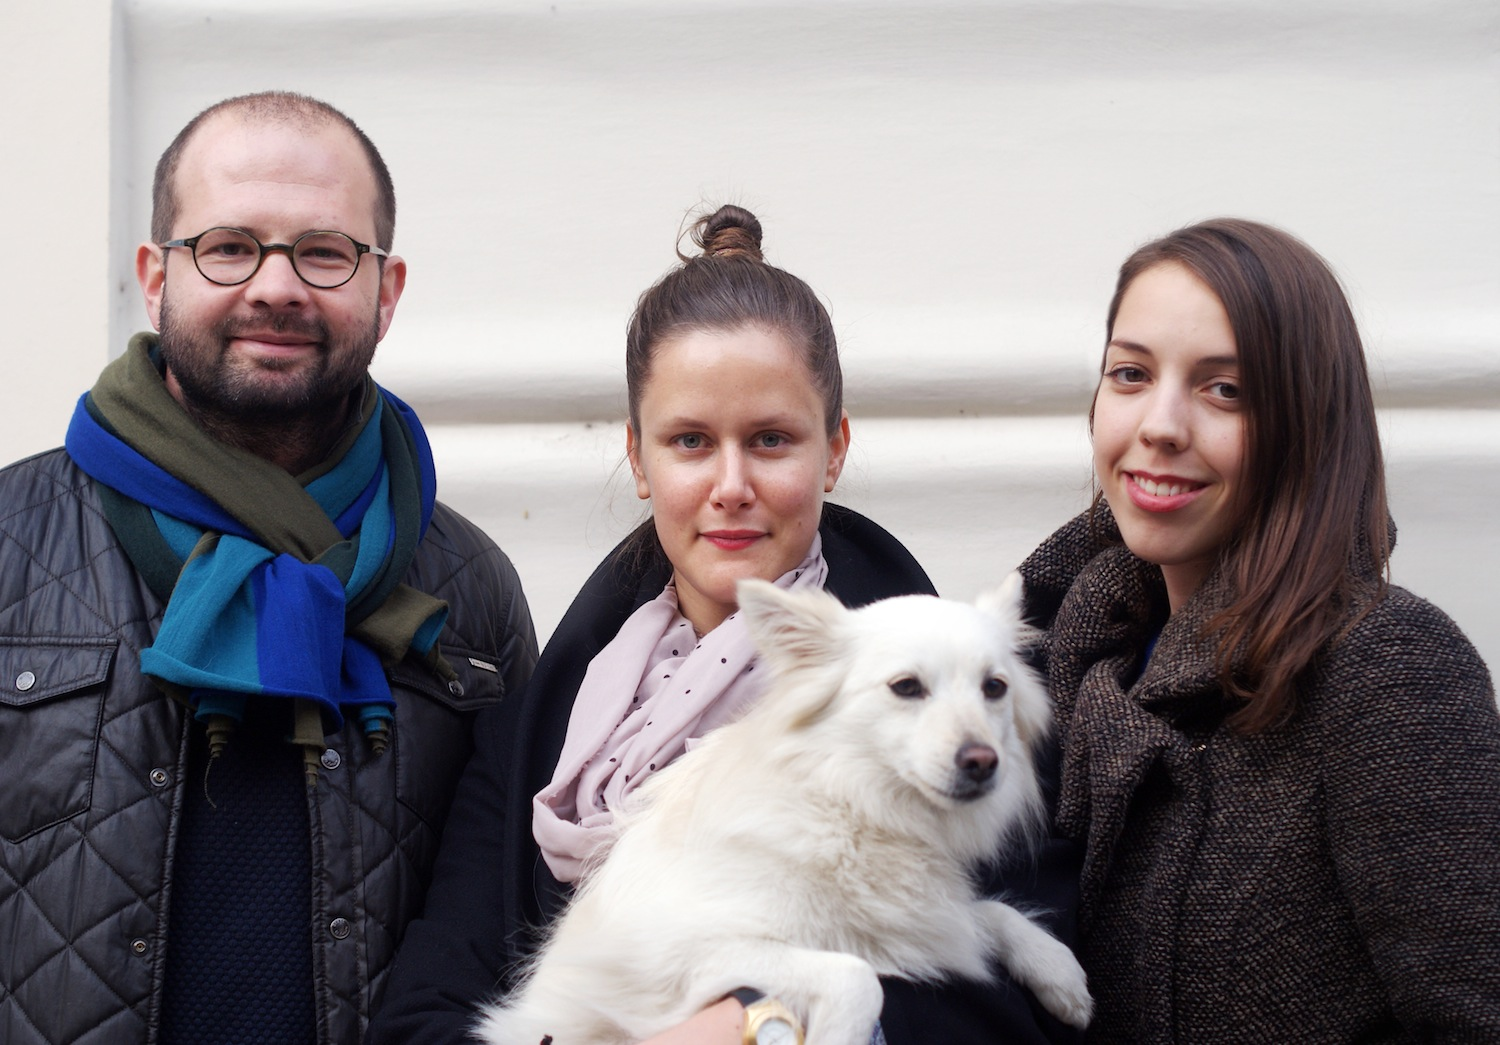 From left: Jan, Martina, their dog Belinka who is shy but loves restaurants, and Terezka